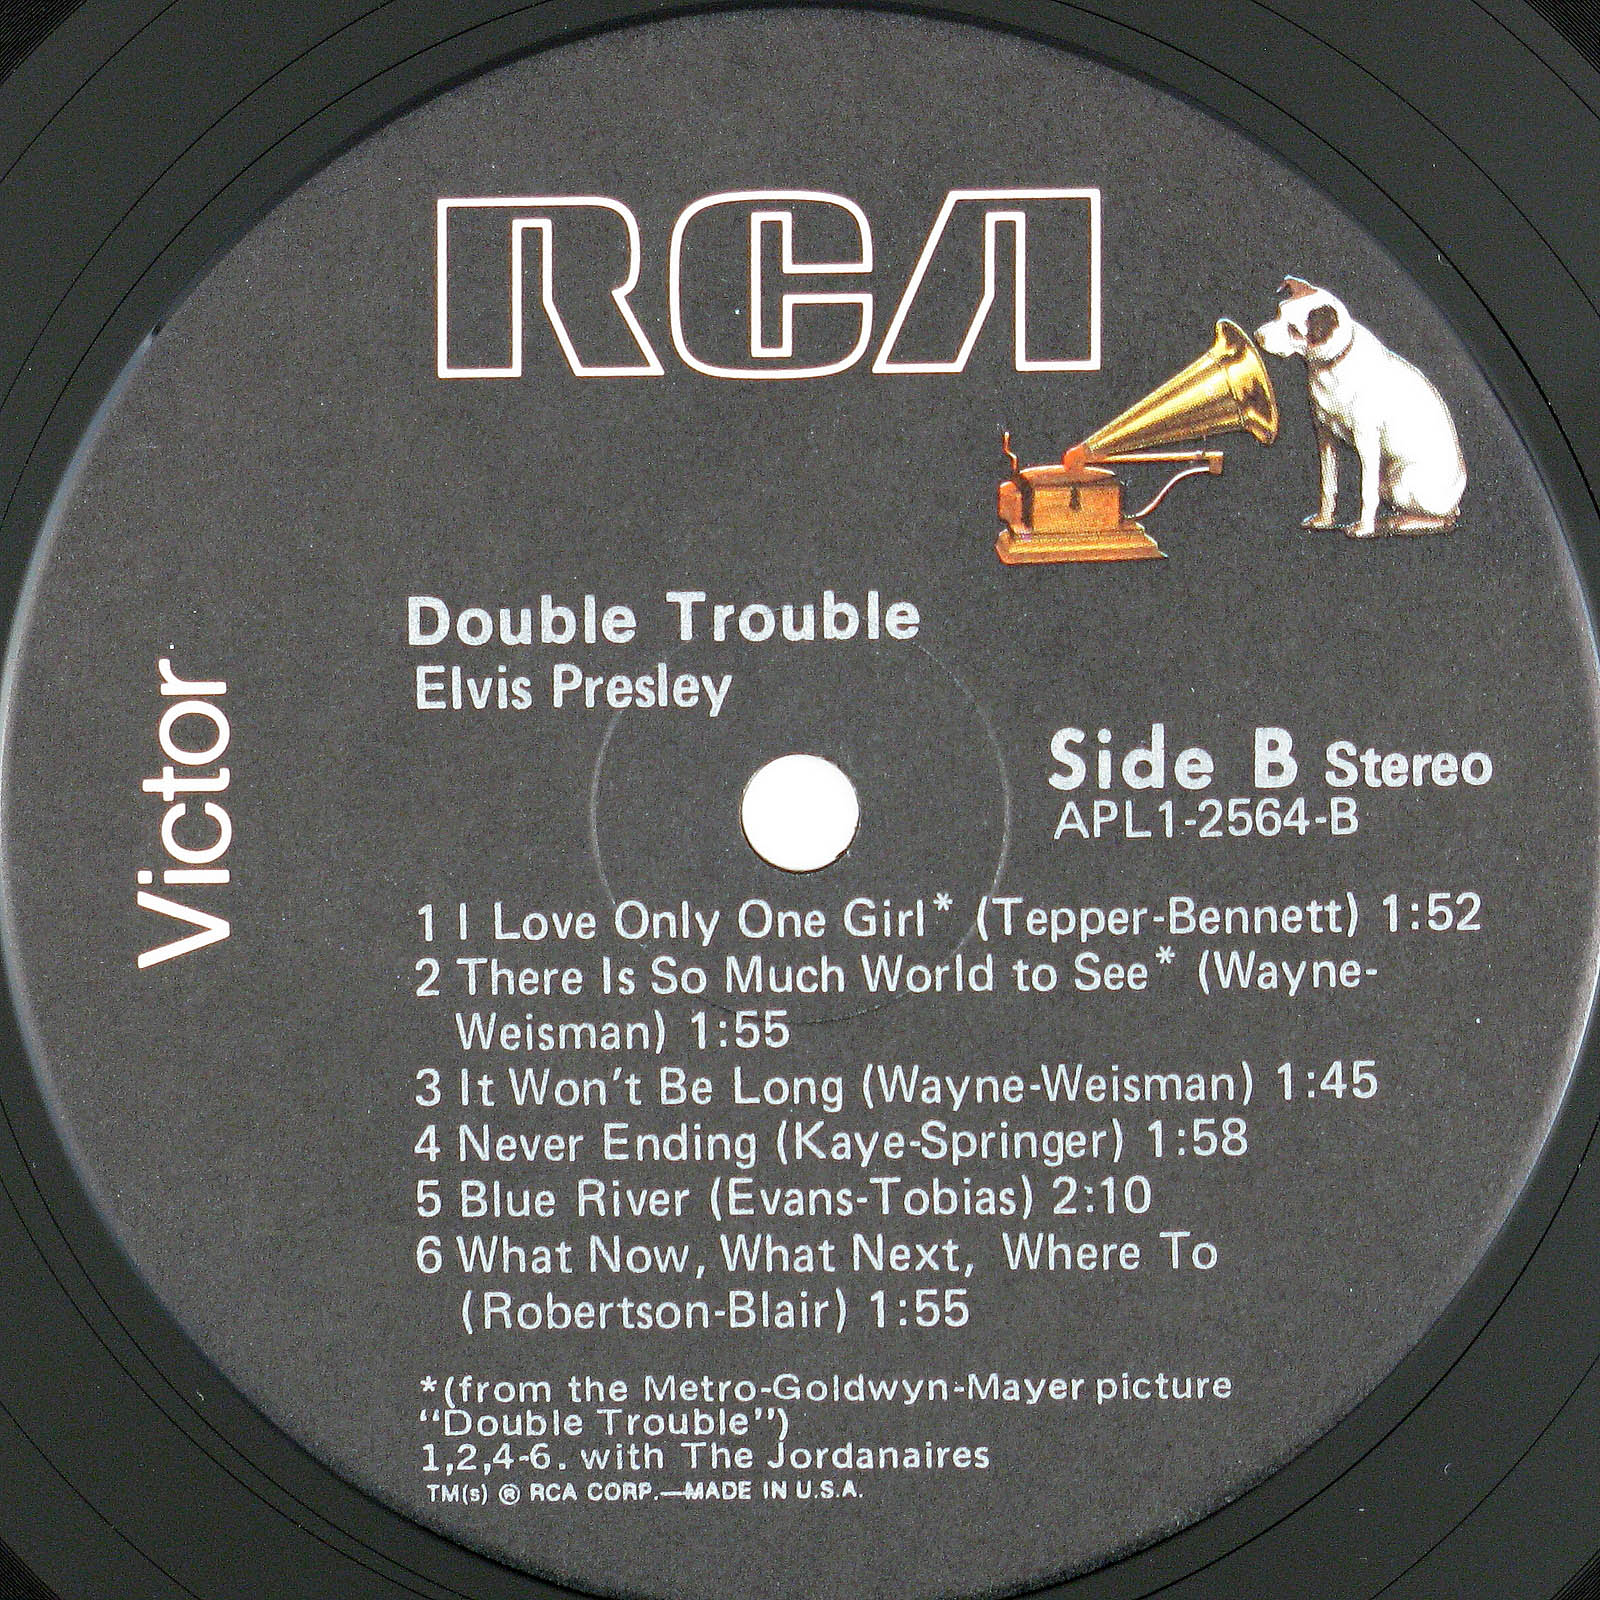 DOUBLE TROUBLE Apl1-2564fzkef5